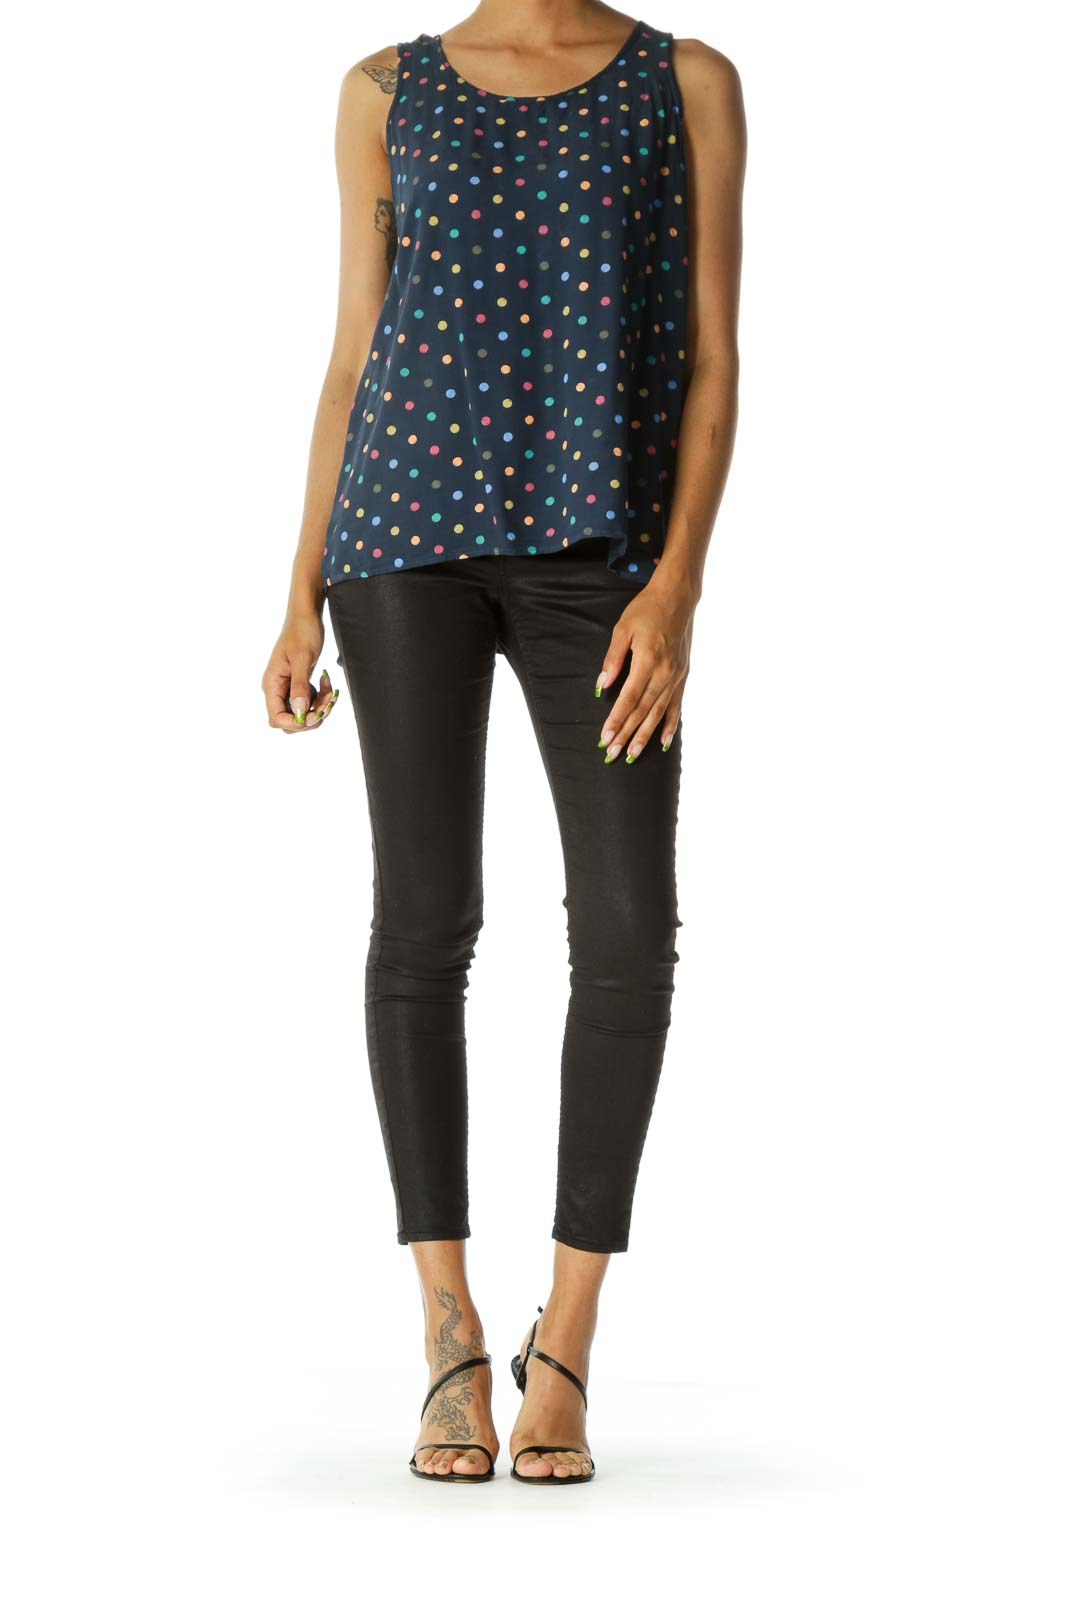 Blue Multicolored Dotted Print Textured Feel Flared Tank Top